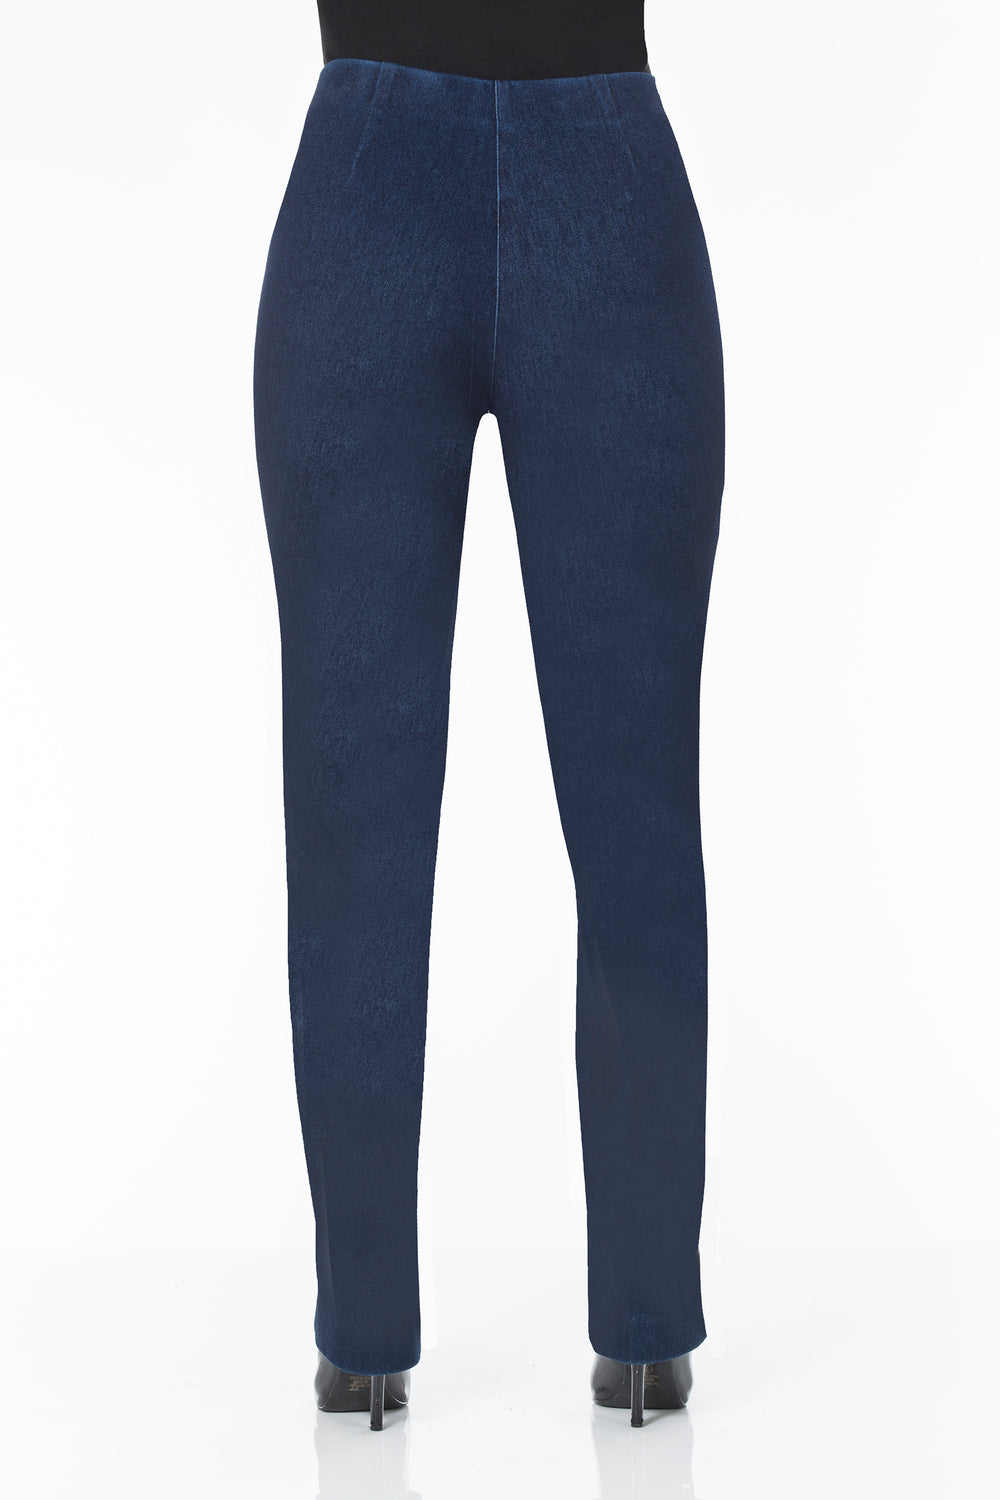 Sasha Denim Pant